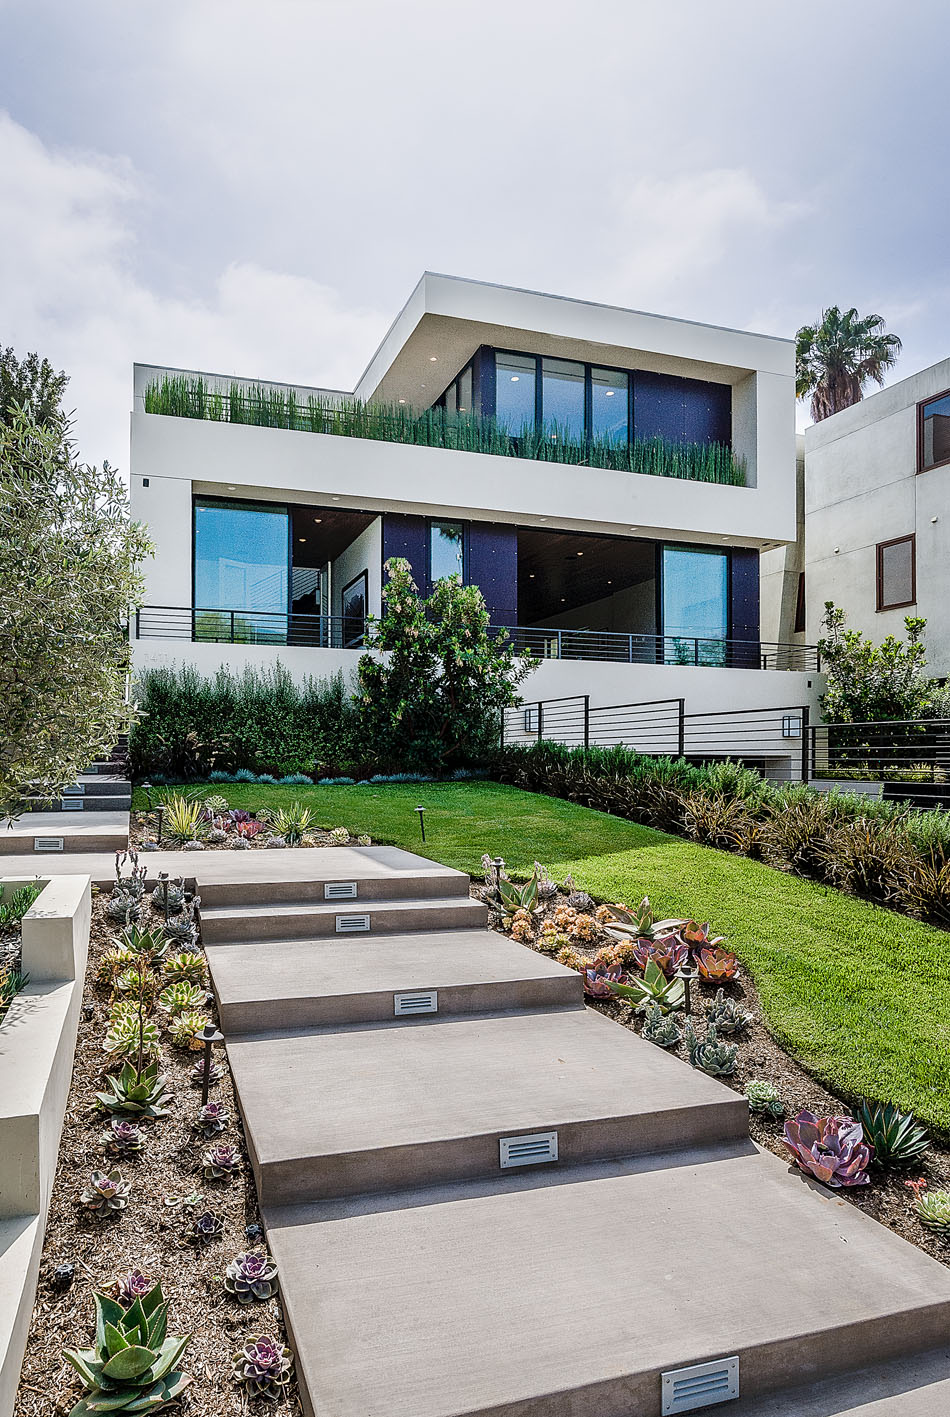 Exclusive new home overlooking the city of angels